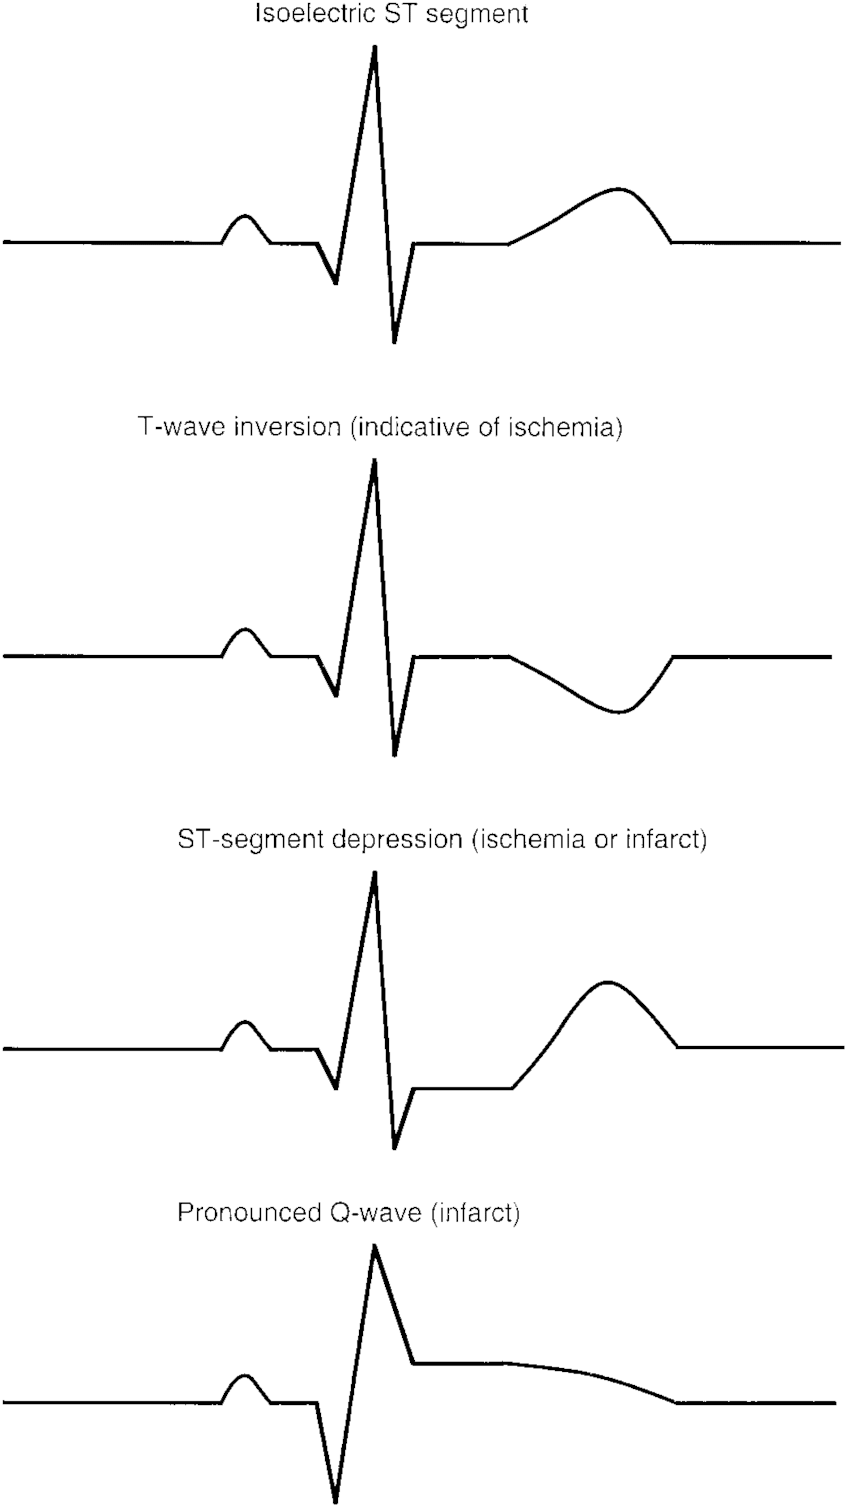 medium resolution of example of 1 normal isoelectric ecg tracing and 3 abnormal ecg tracings fig